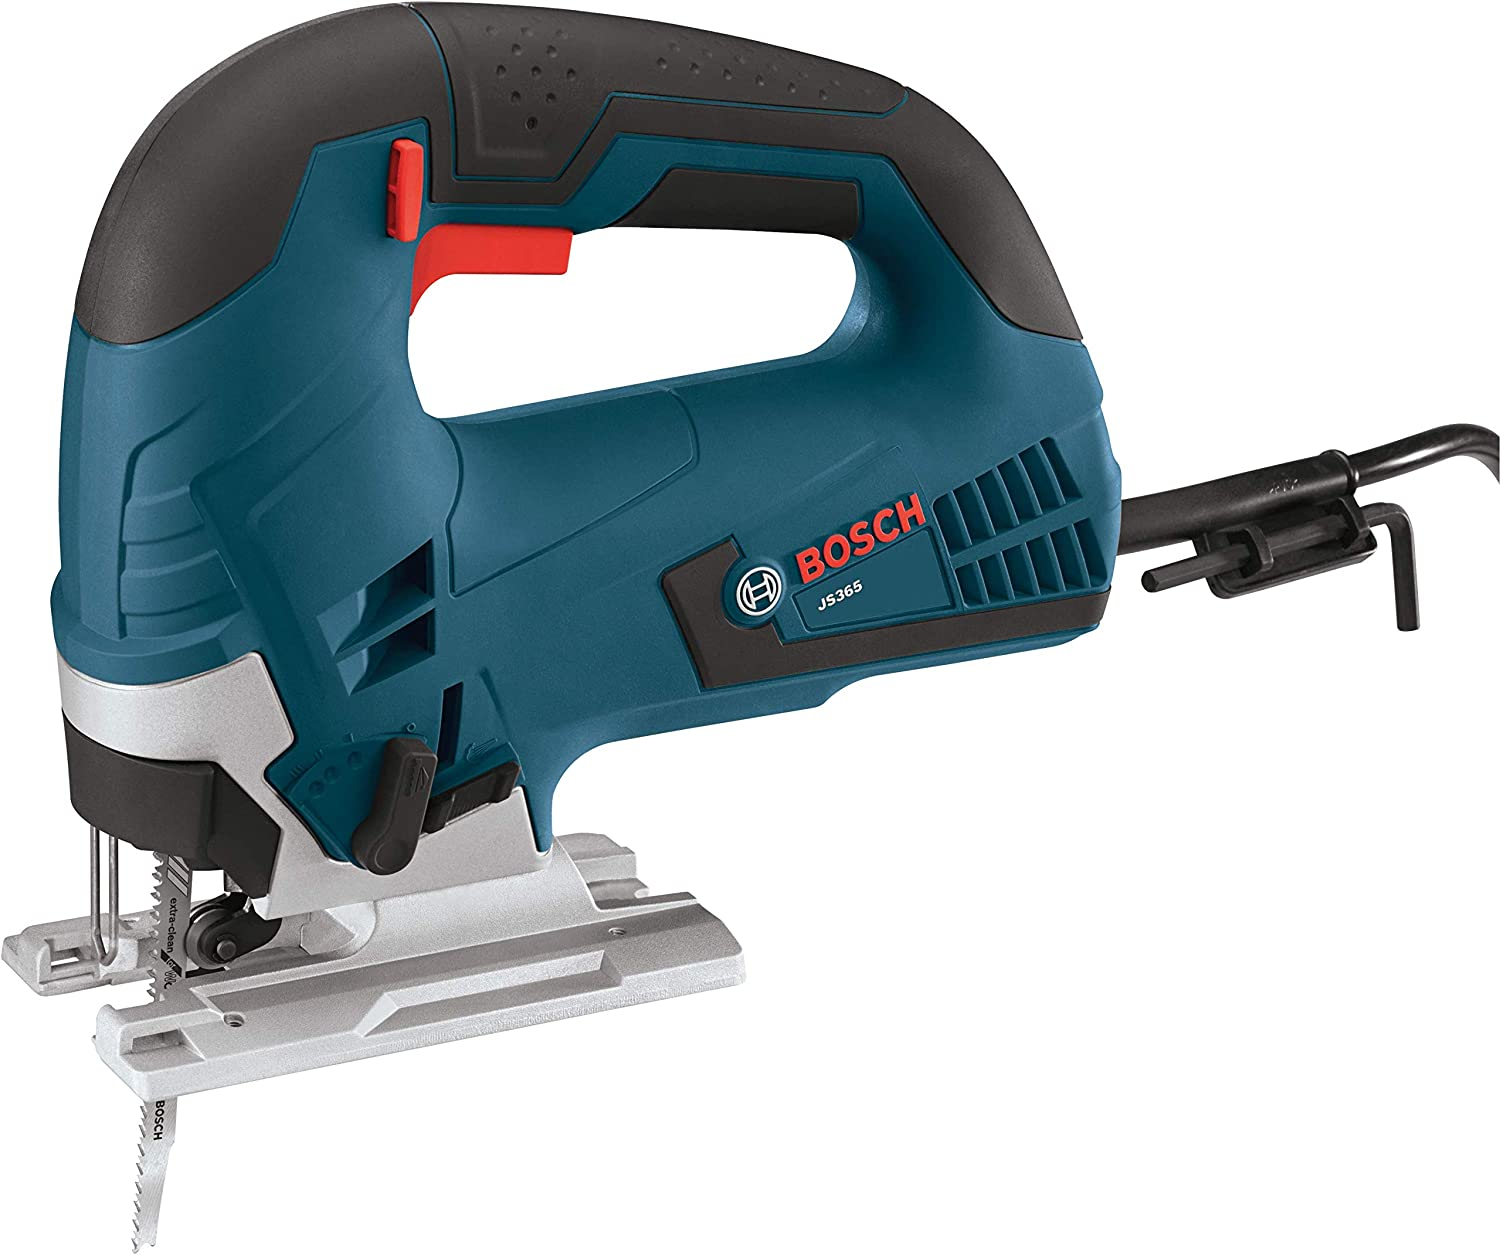 BOSCH Indianapolis Mall OFFicial store 120-Volt Top-Handle Jigsaw Kit 6.5 JS365 Amp Blue